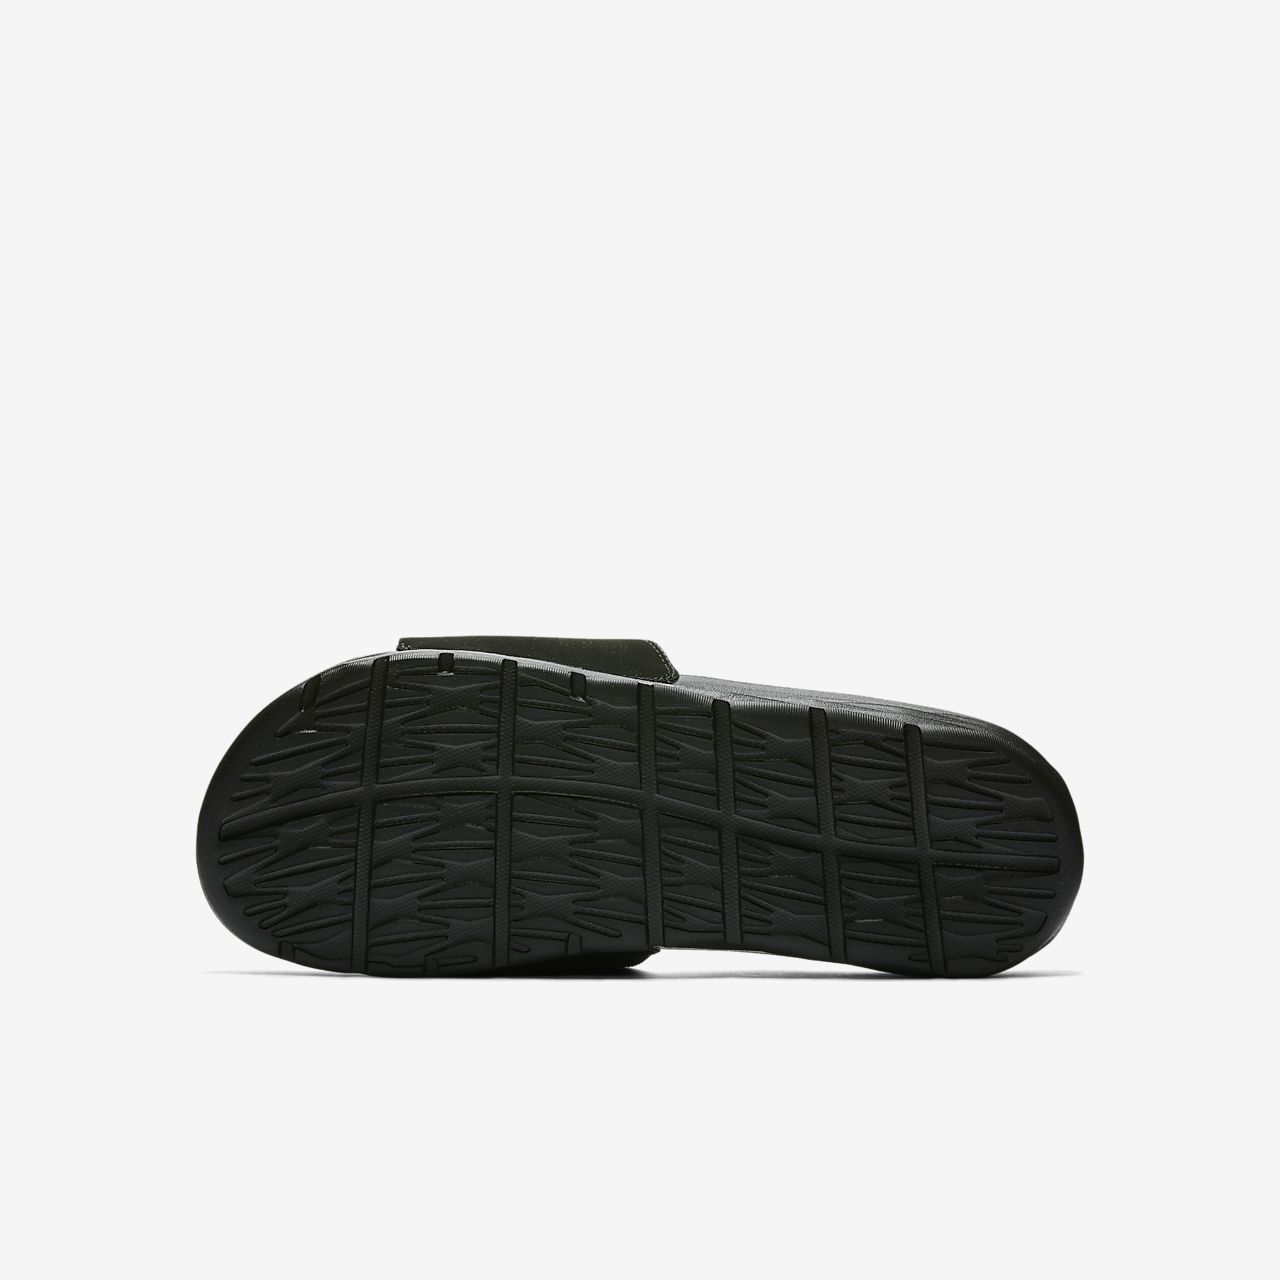 ... Nike Benassi Solarsoft 2 Men's Golf Slide